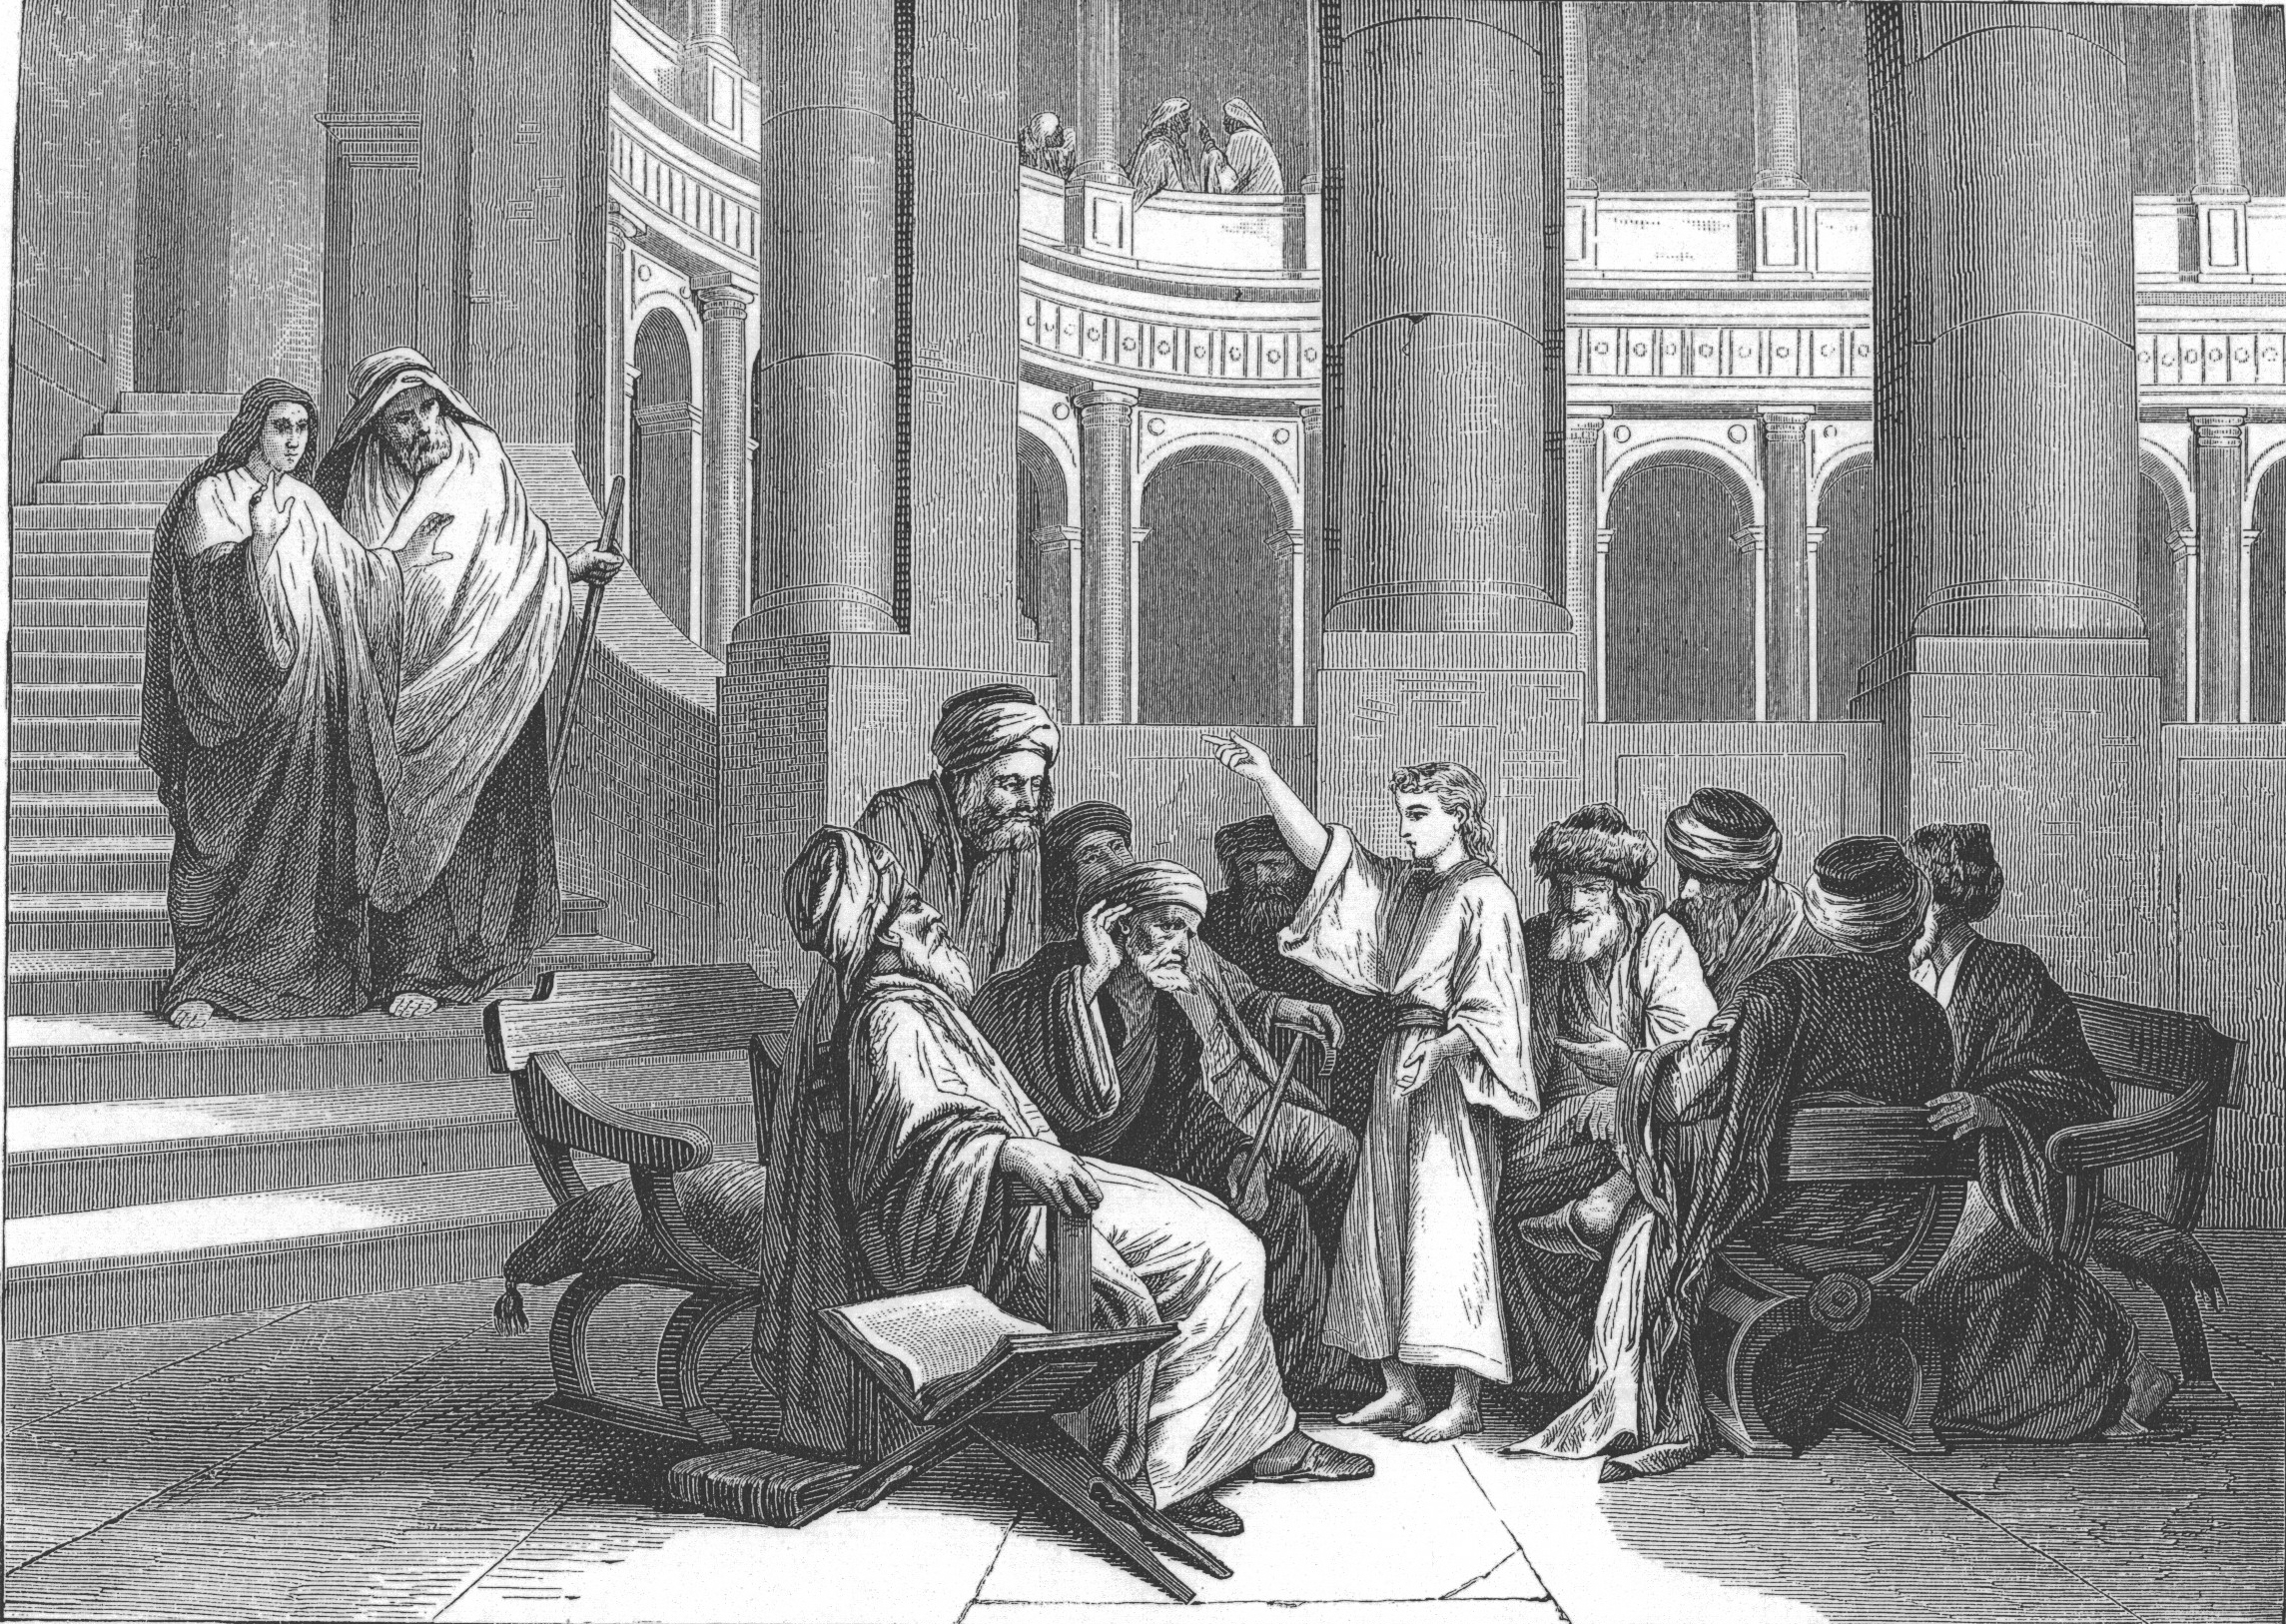 File:Christ Pharisees.jpg - Wikipedia, the free encyclopedia